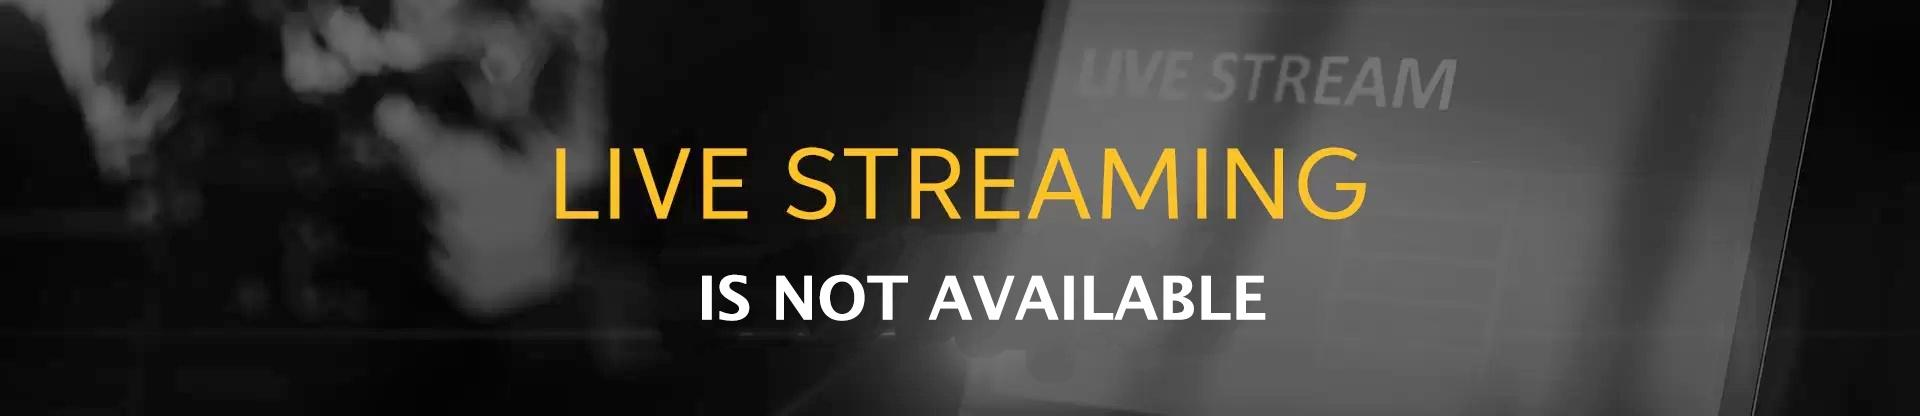 Live Streaming is not Available